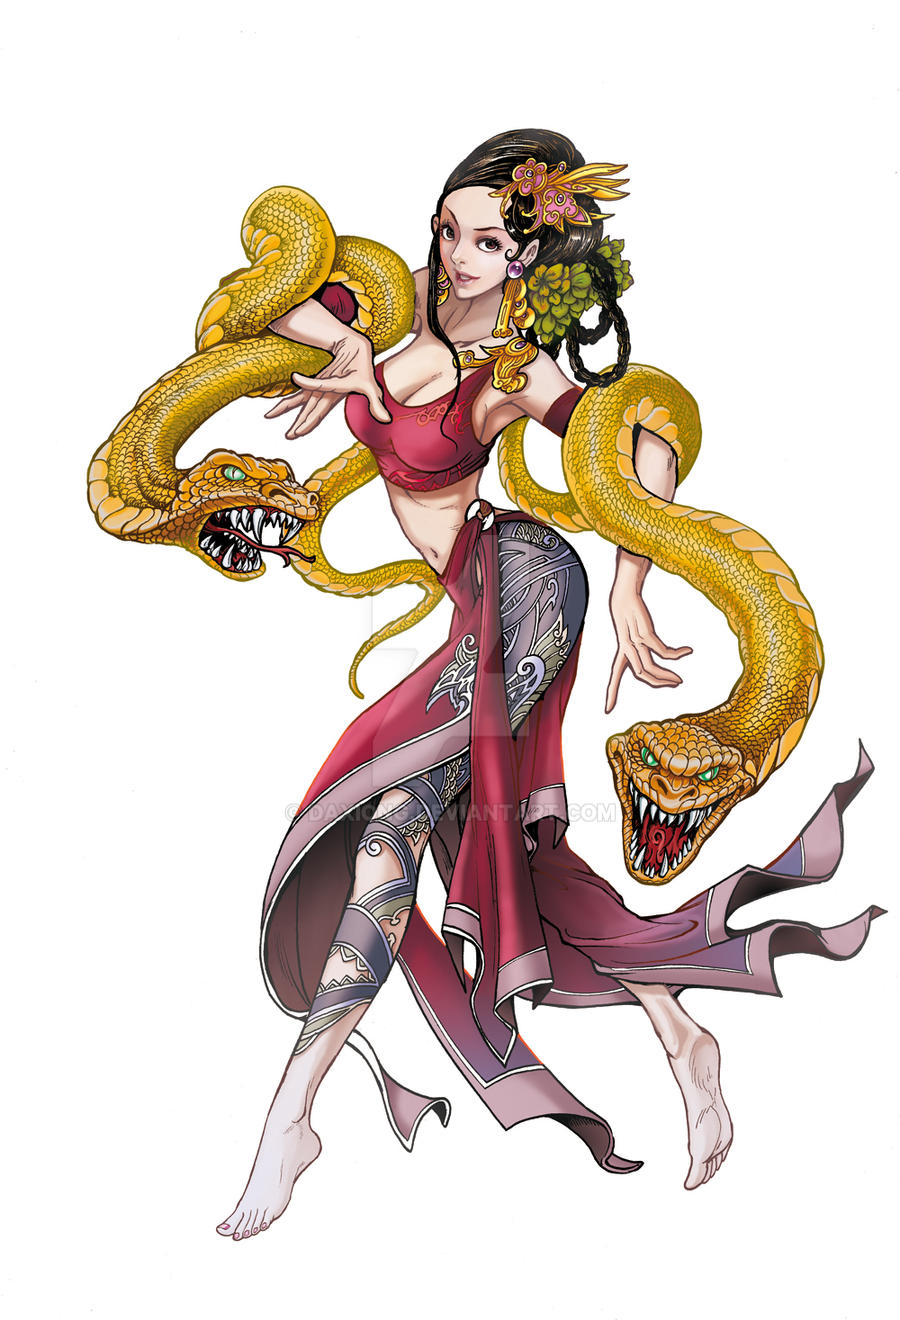 Zodiacs - Year of the Snake by daxiong